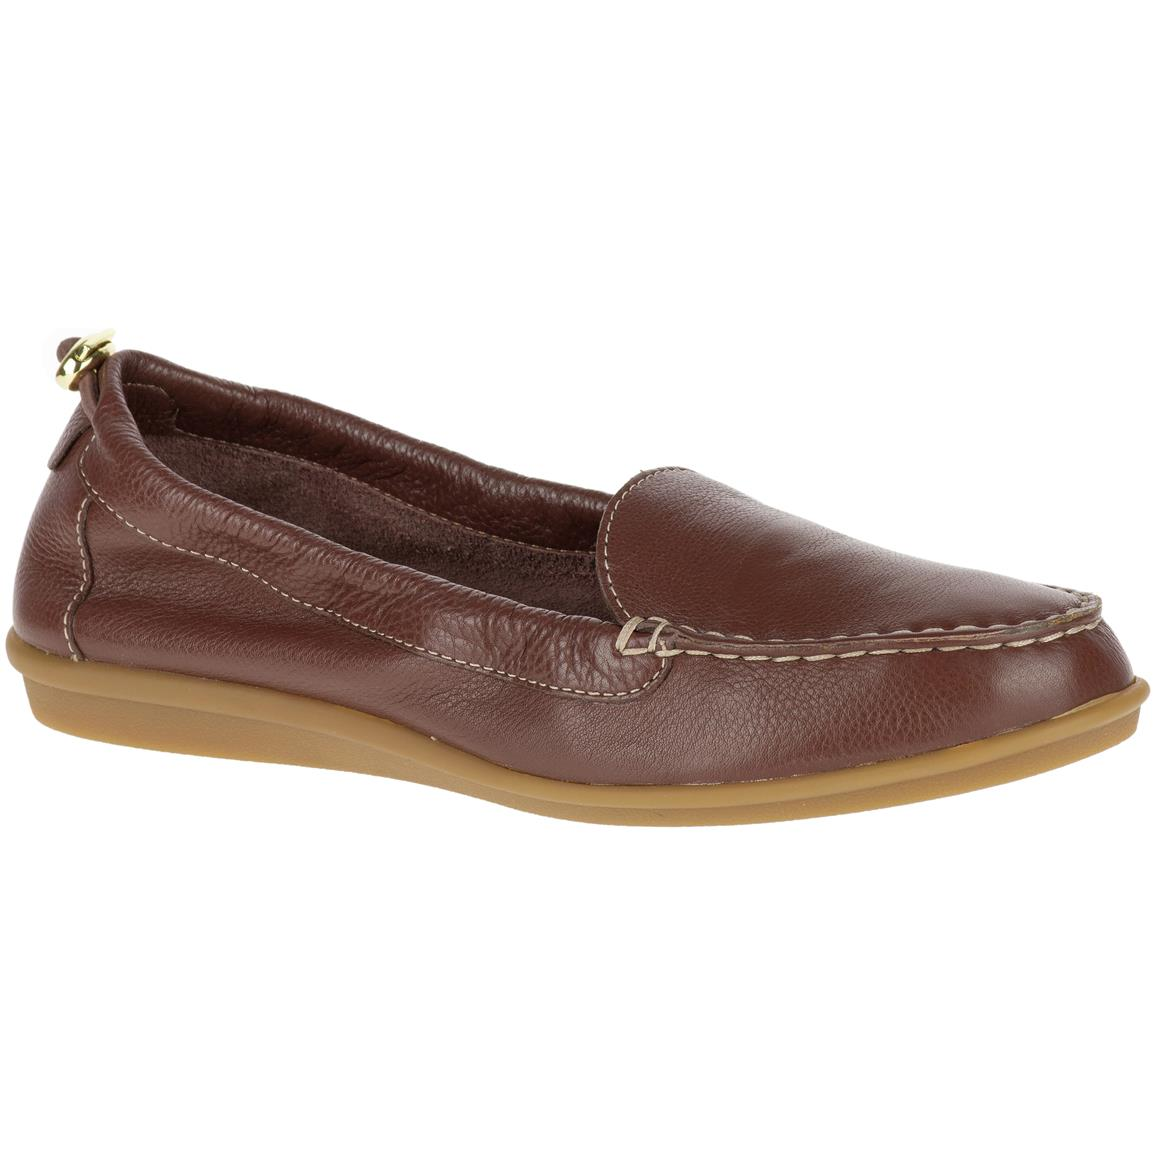 Hush Puppies Women's Endless Wink Casual Shoes, Dark Brown Leather